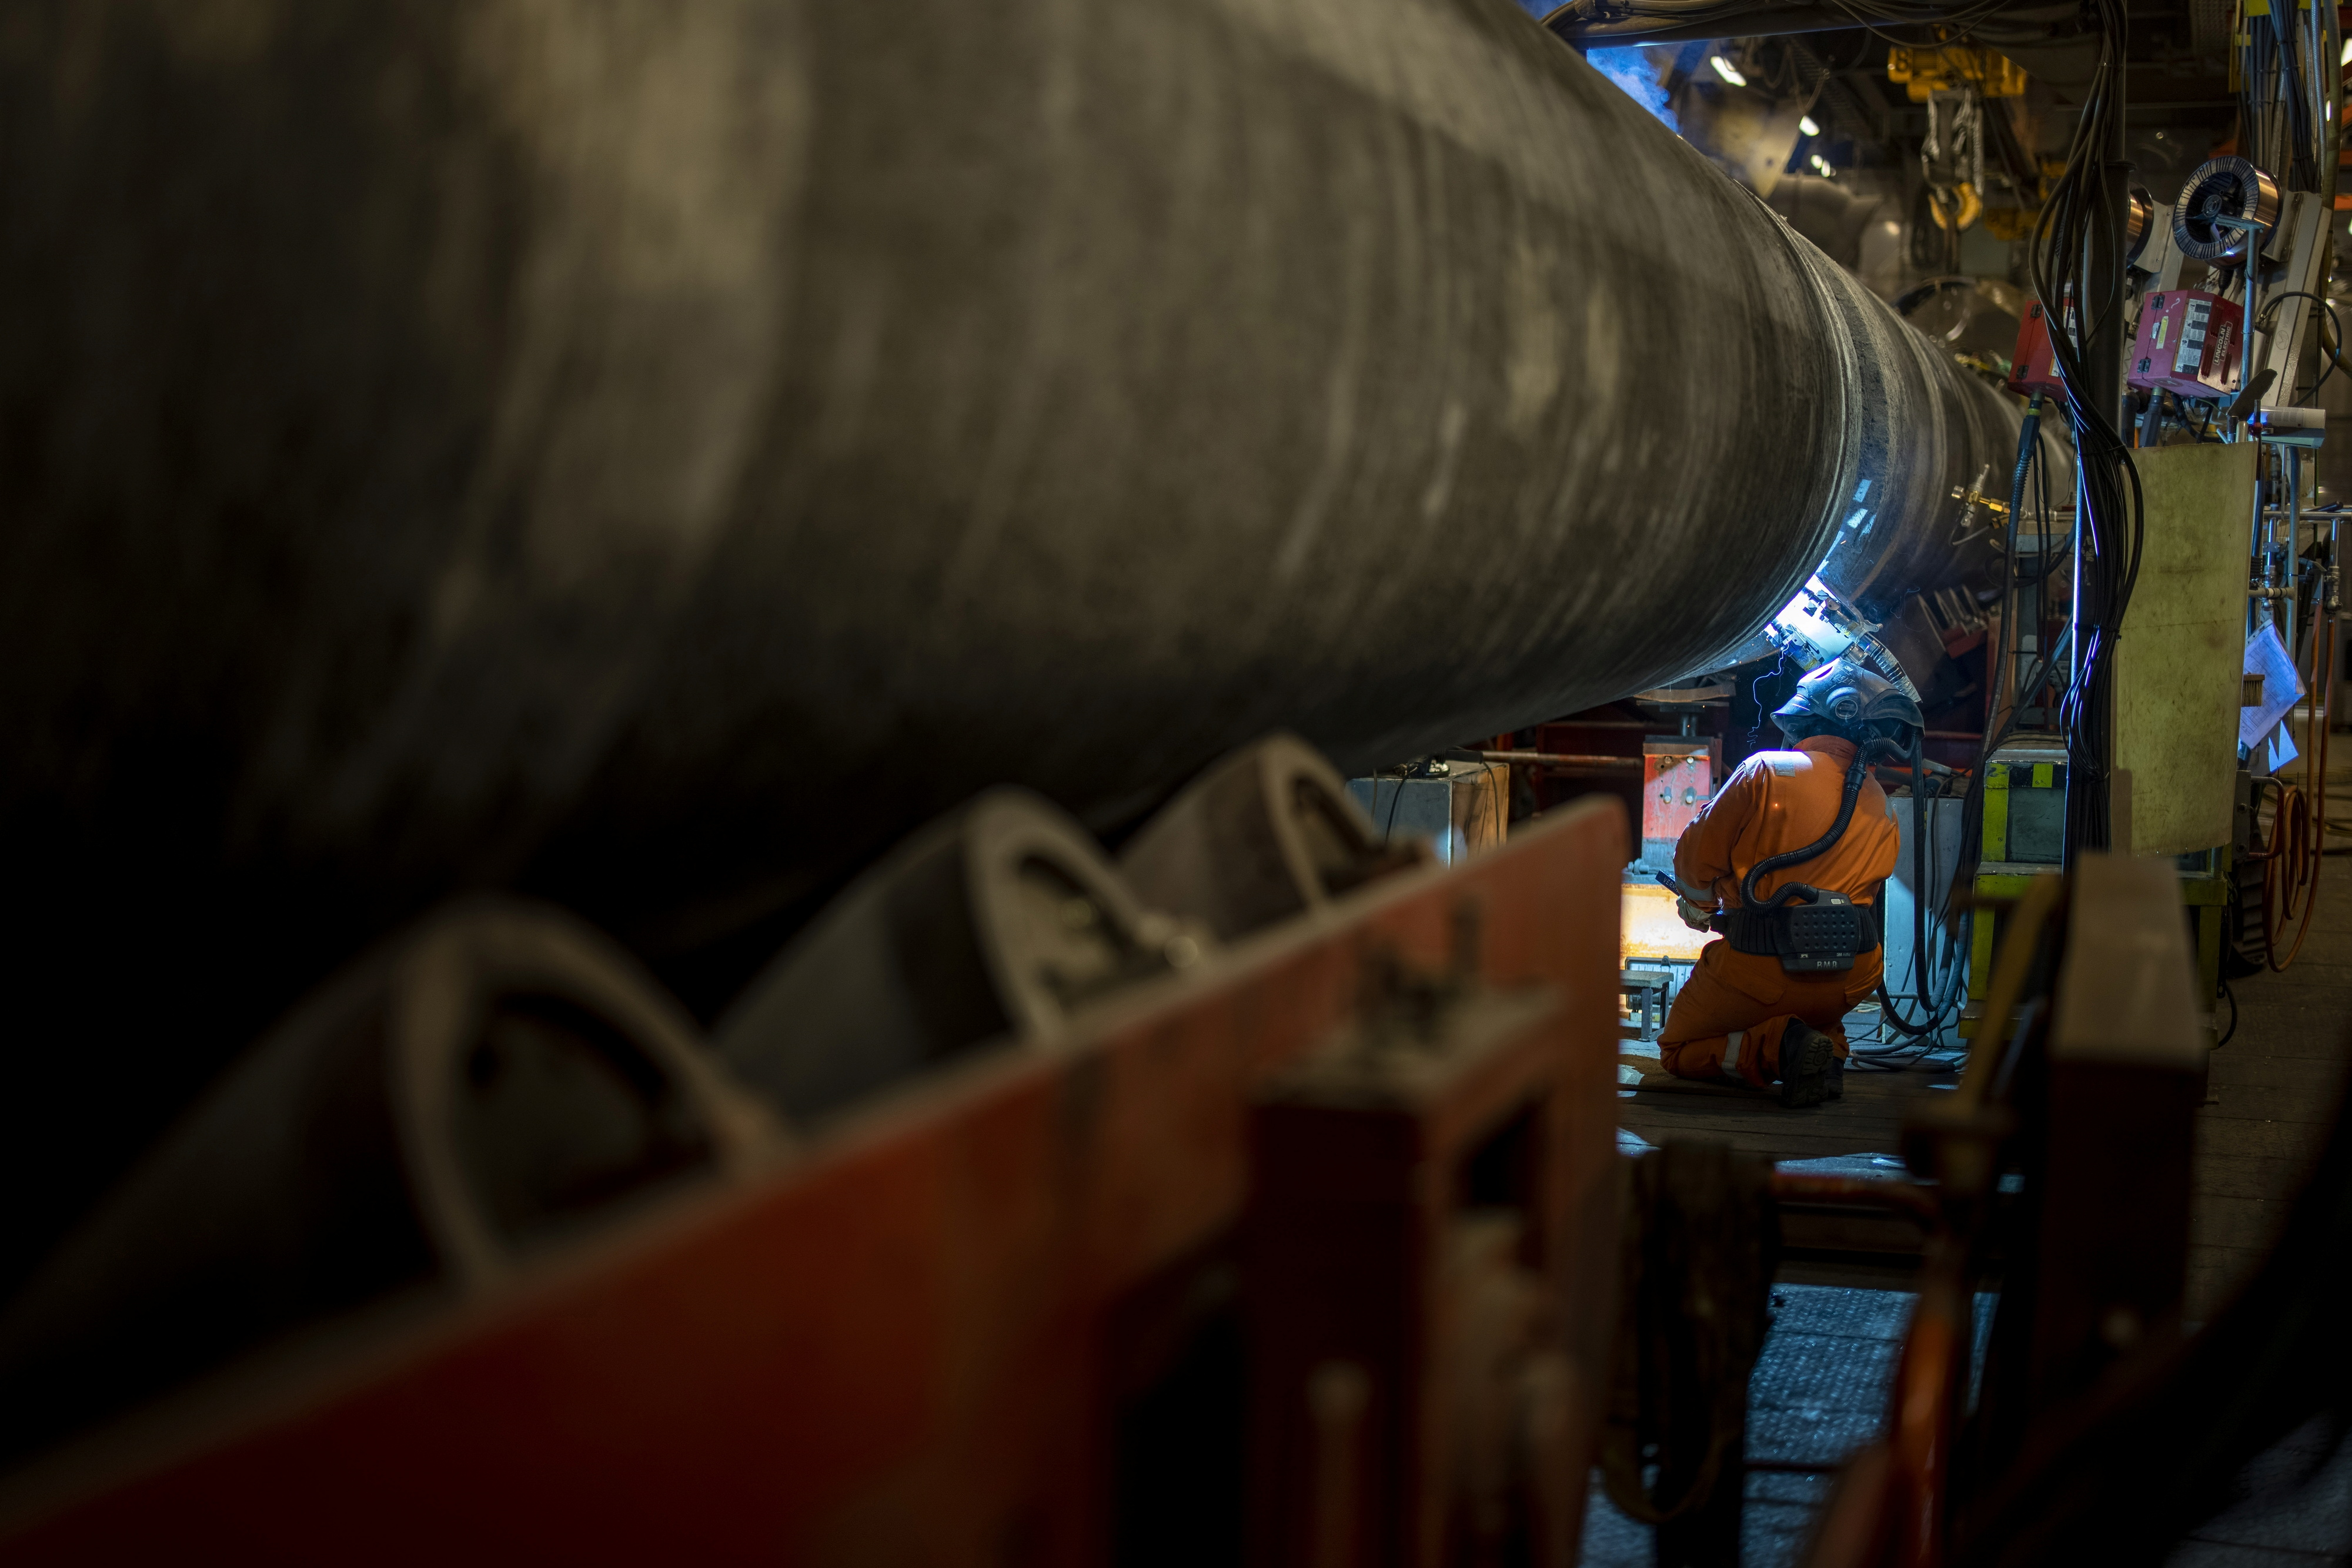 A specialist welds a pipe while finishing the construction of the Nord Stream 2 gas subsea pipeline onboard the laybarge Fortuna in German waters in the Baltic Sea, September 6, 2021. Nord Stream 2/Axel Schmidt/Handout via REUTERS